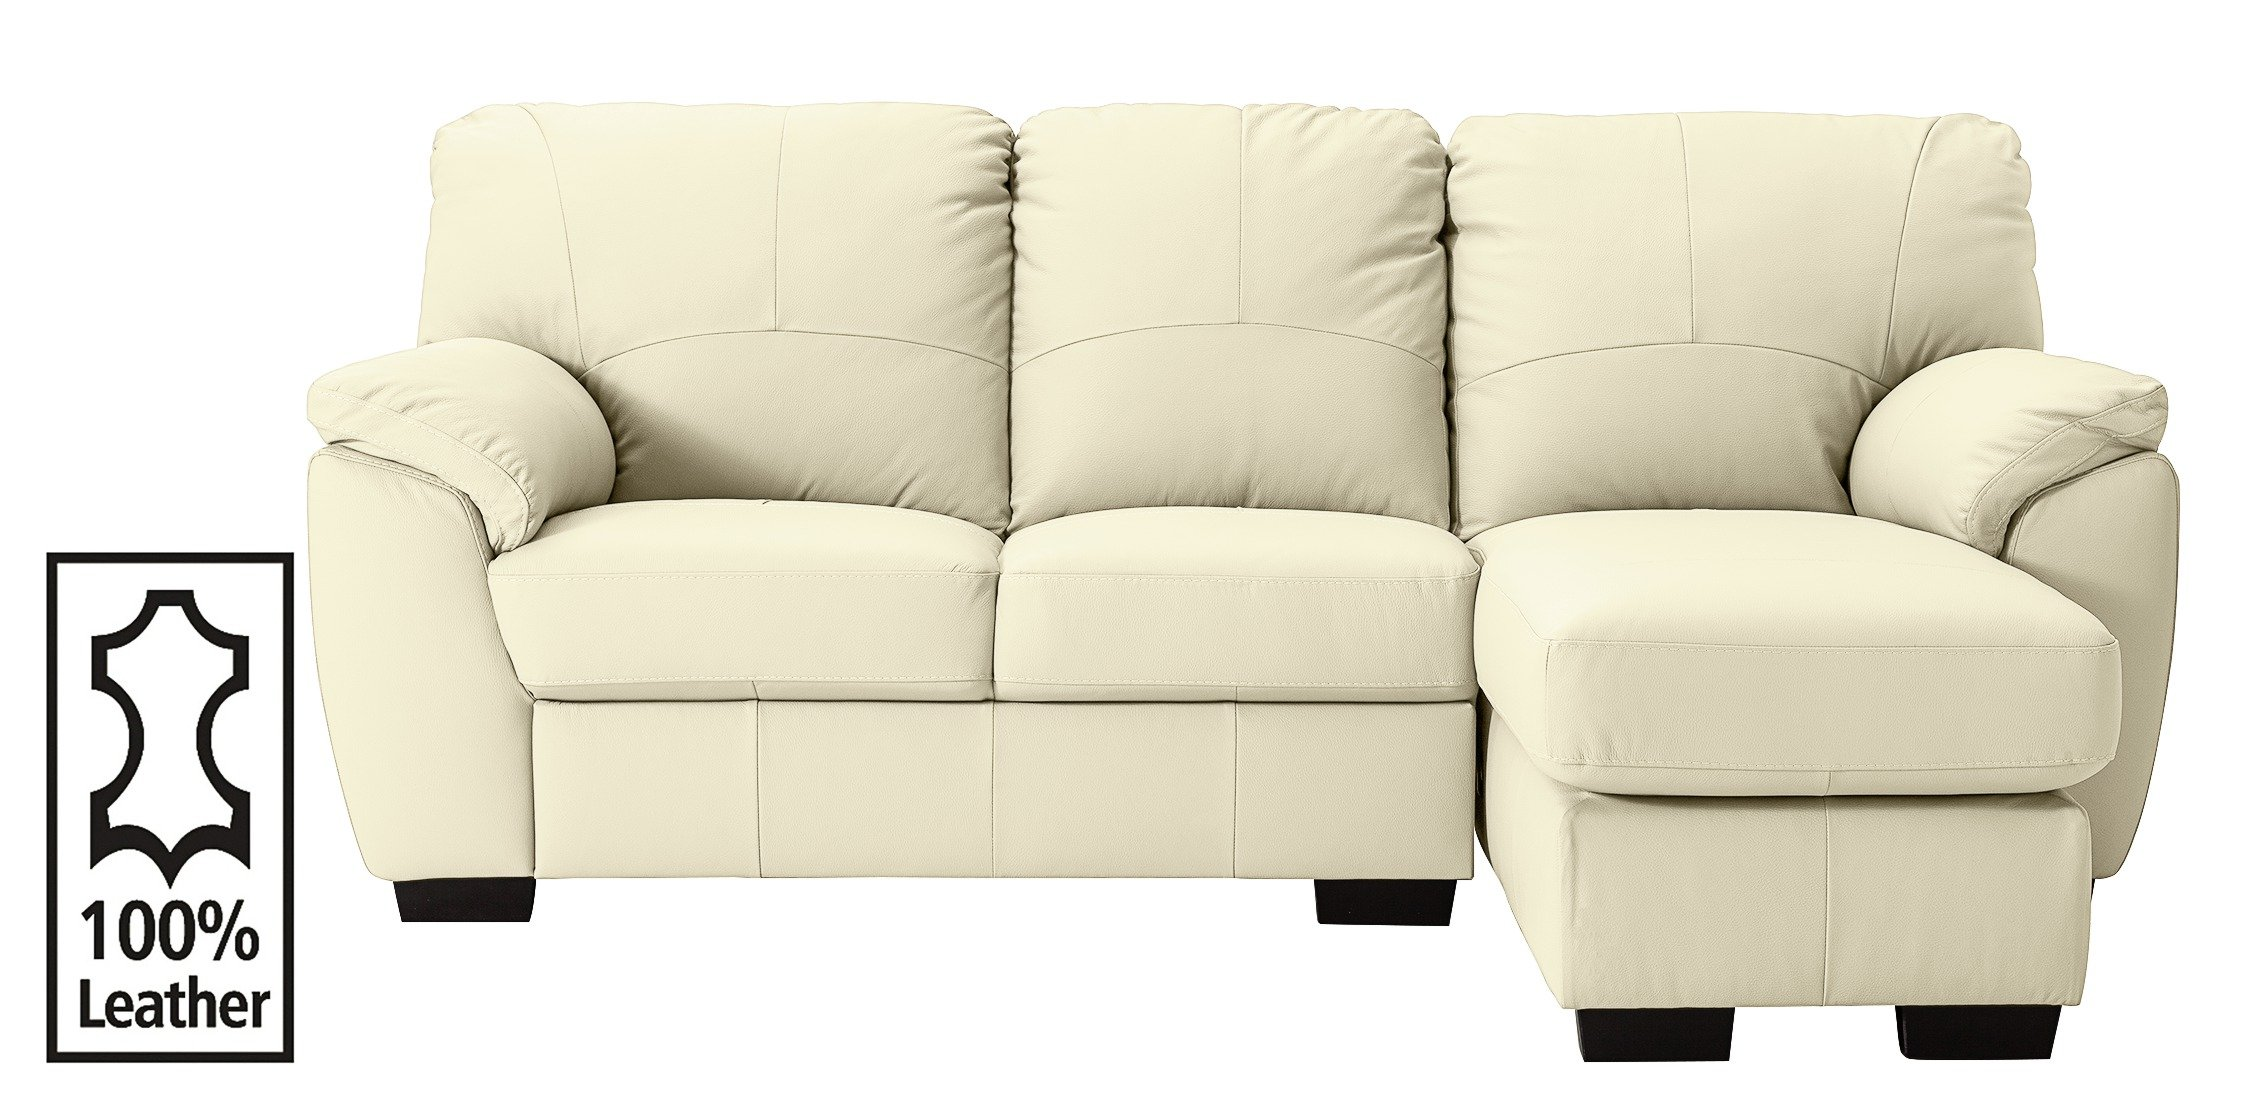 Collection milano leather right chaise longue sofa ivory for Argos chaise longue